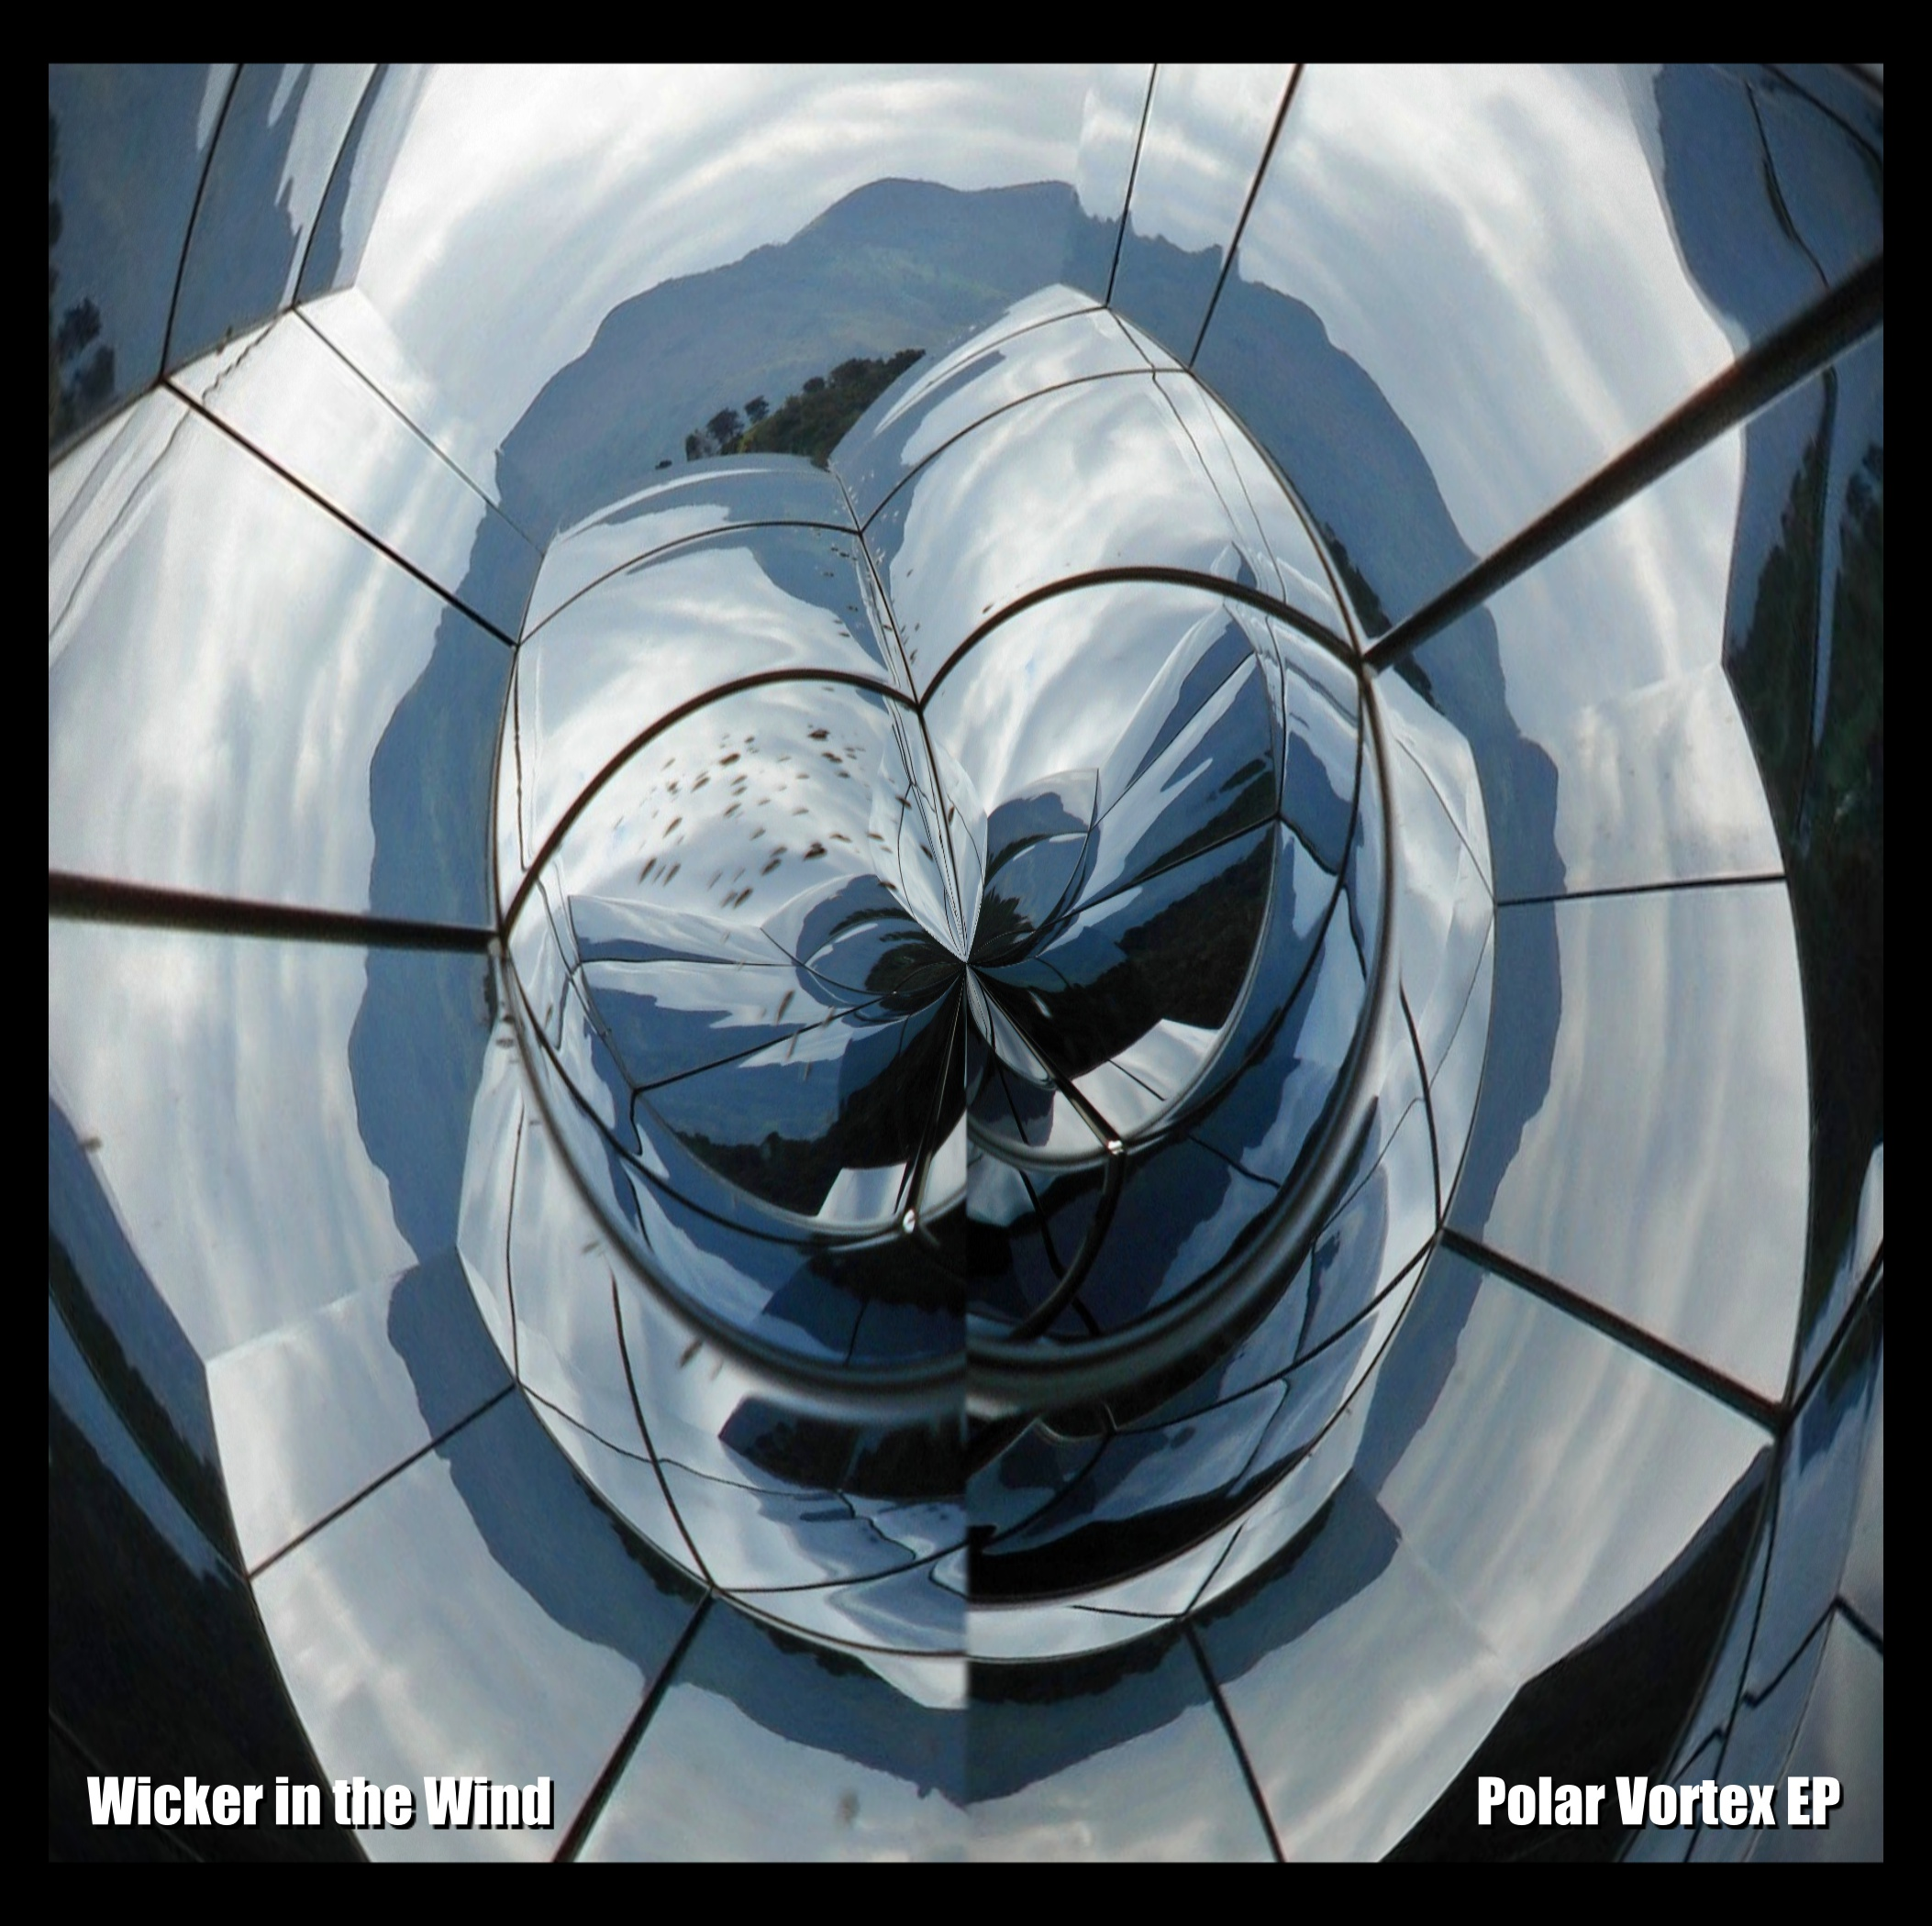 Wicker in the Wind Album Cover 2.jpg